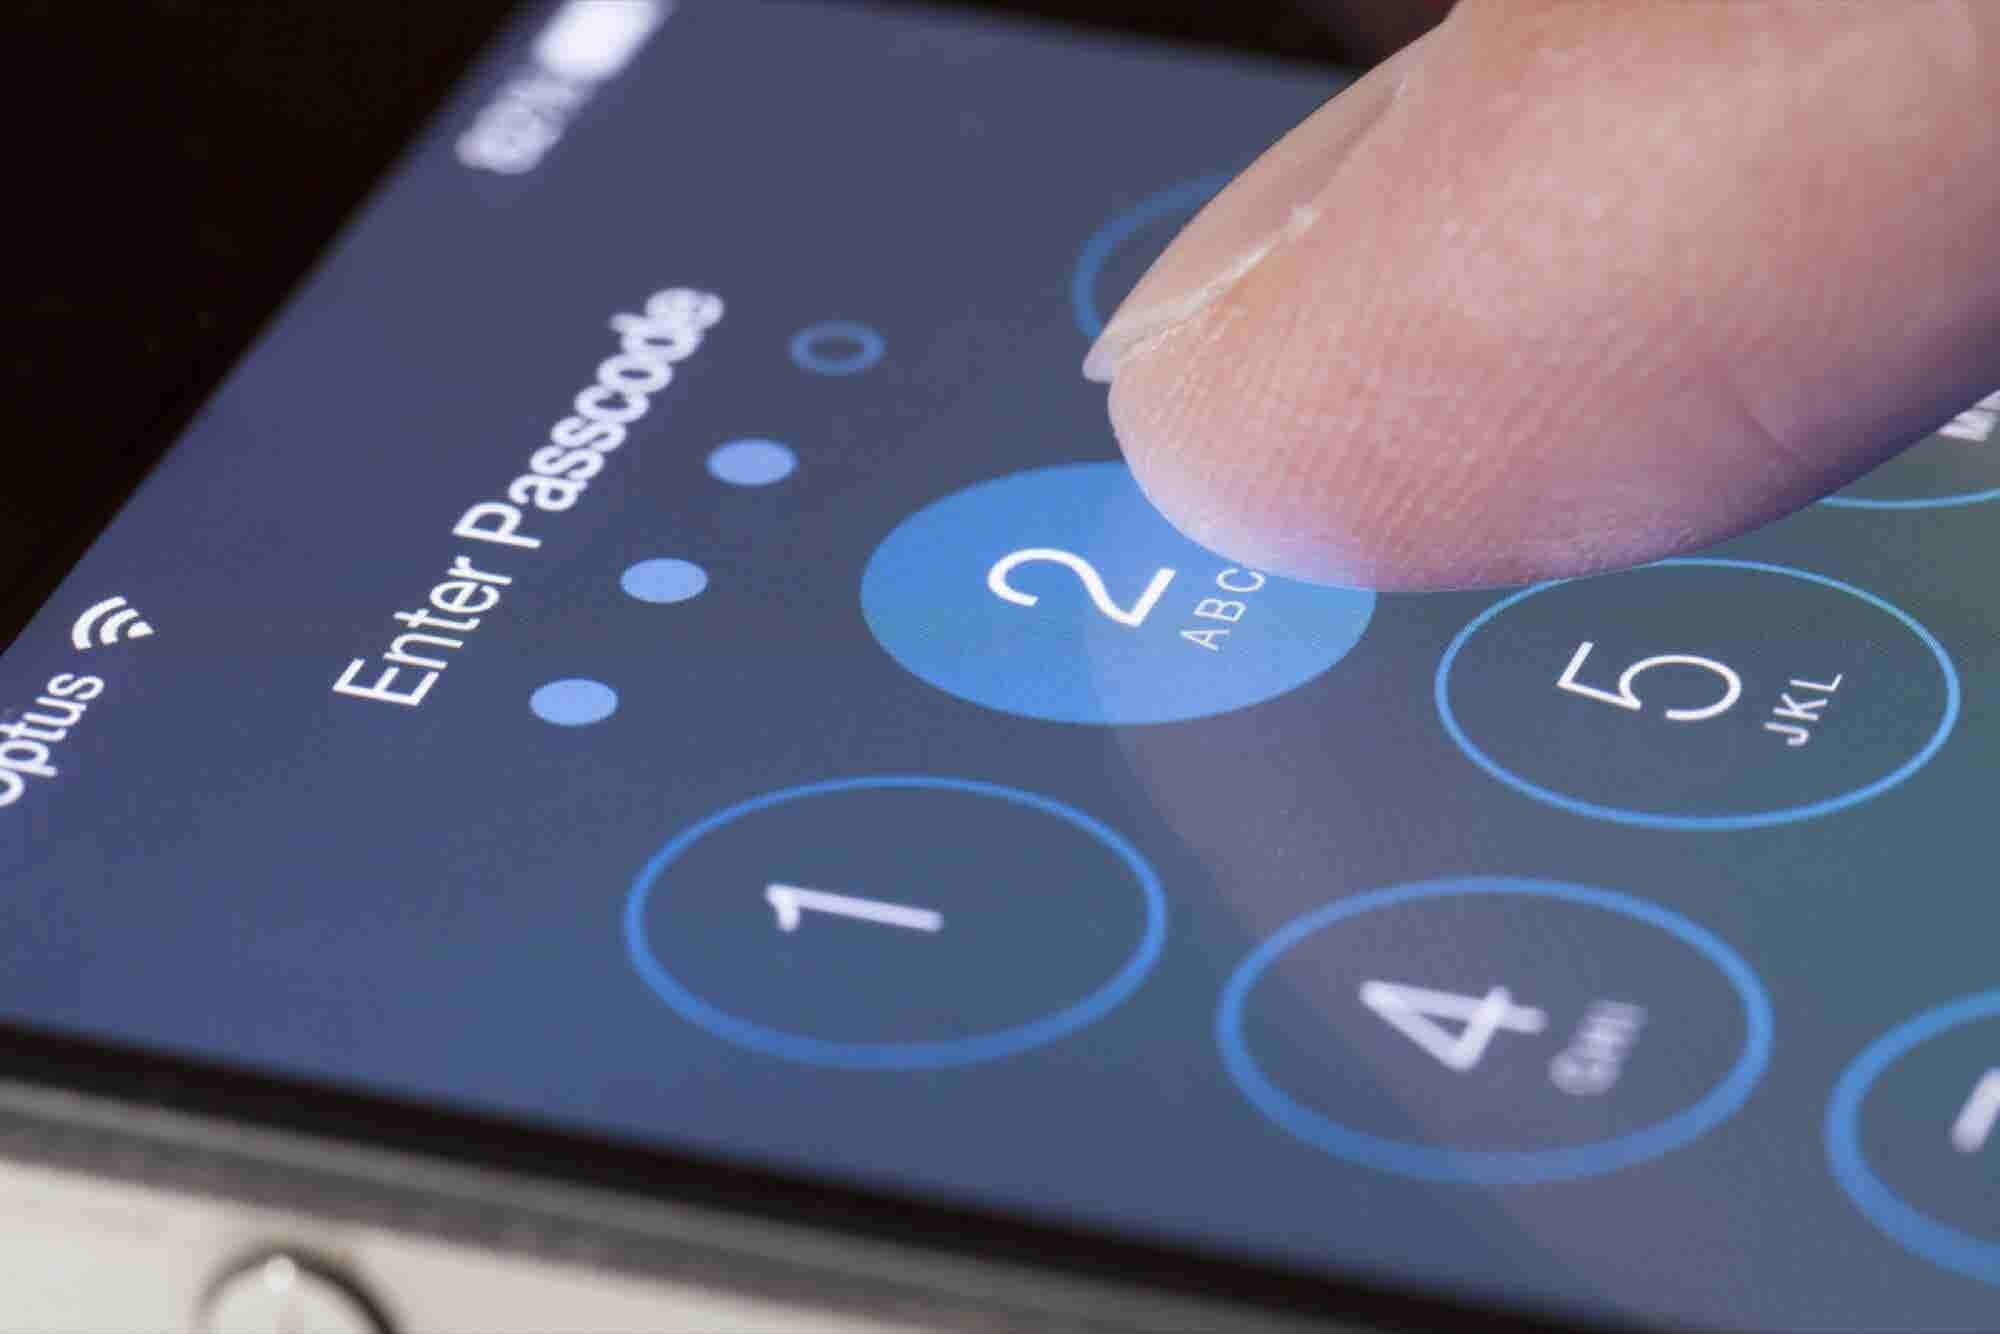 U.S. Investigates Security of Mobile Devices